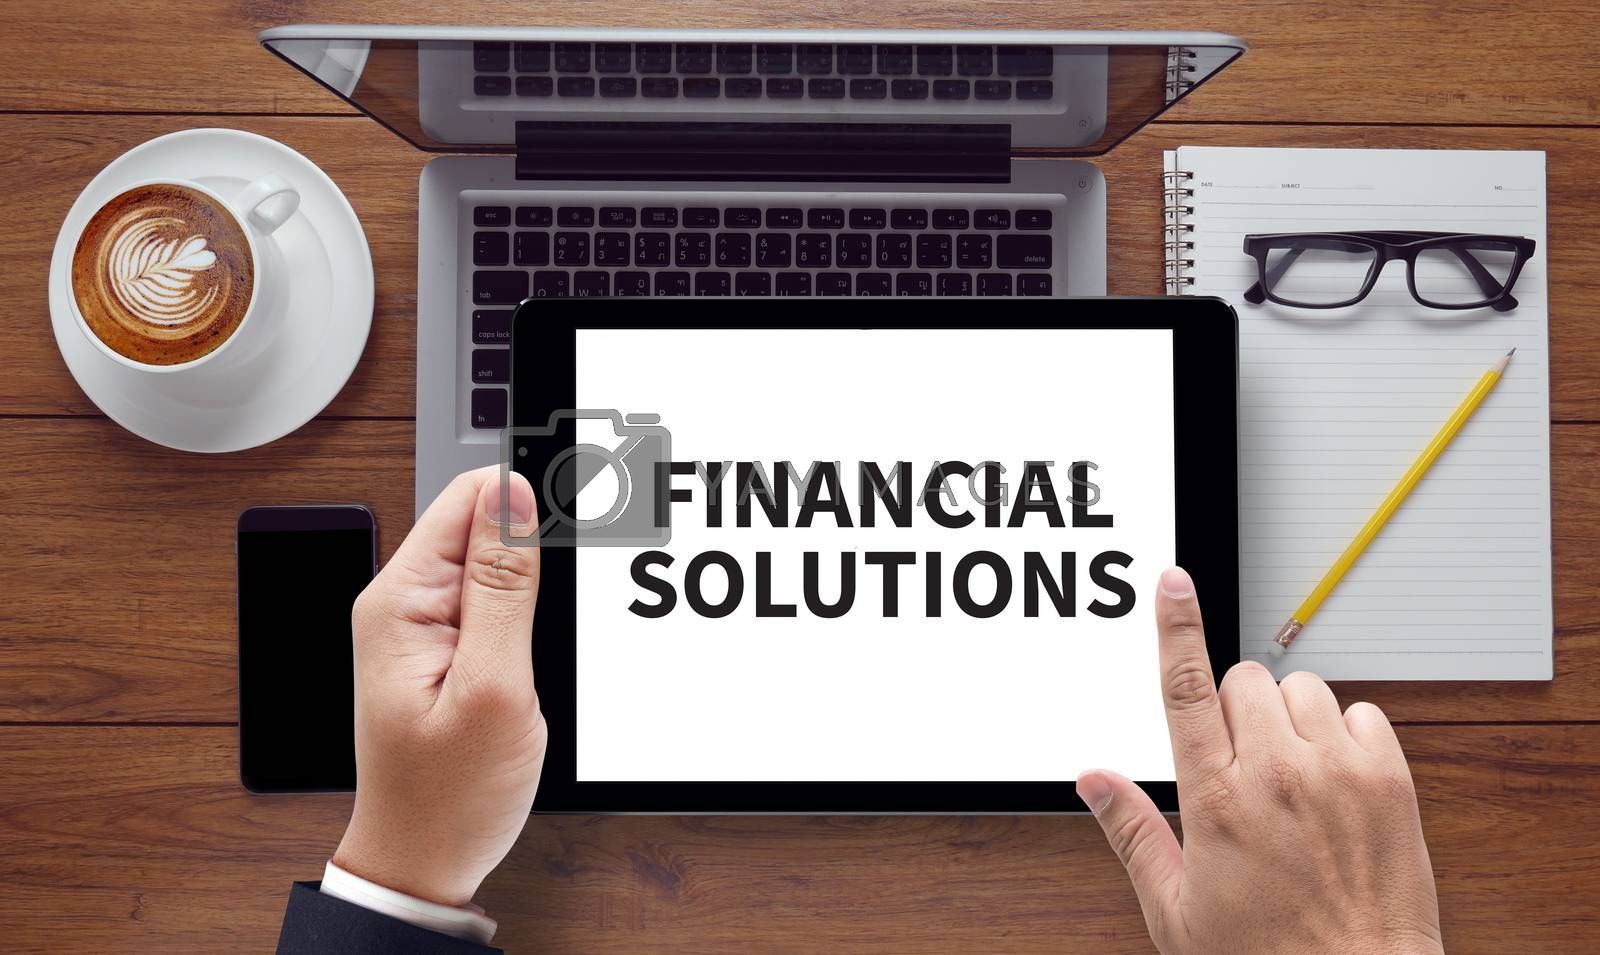 FINANCIAL SOLUTIONS , on the tablet pc screen held by businessman hands - online, top view